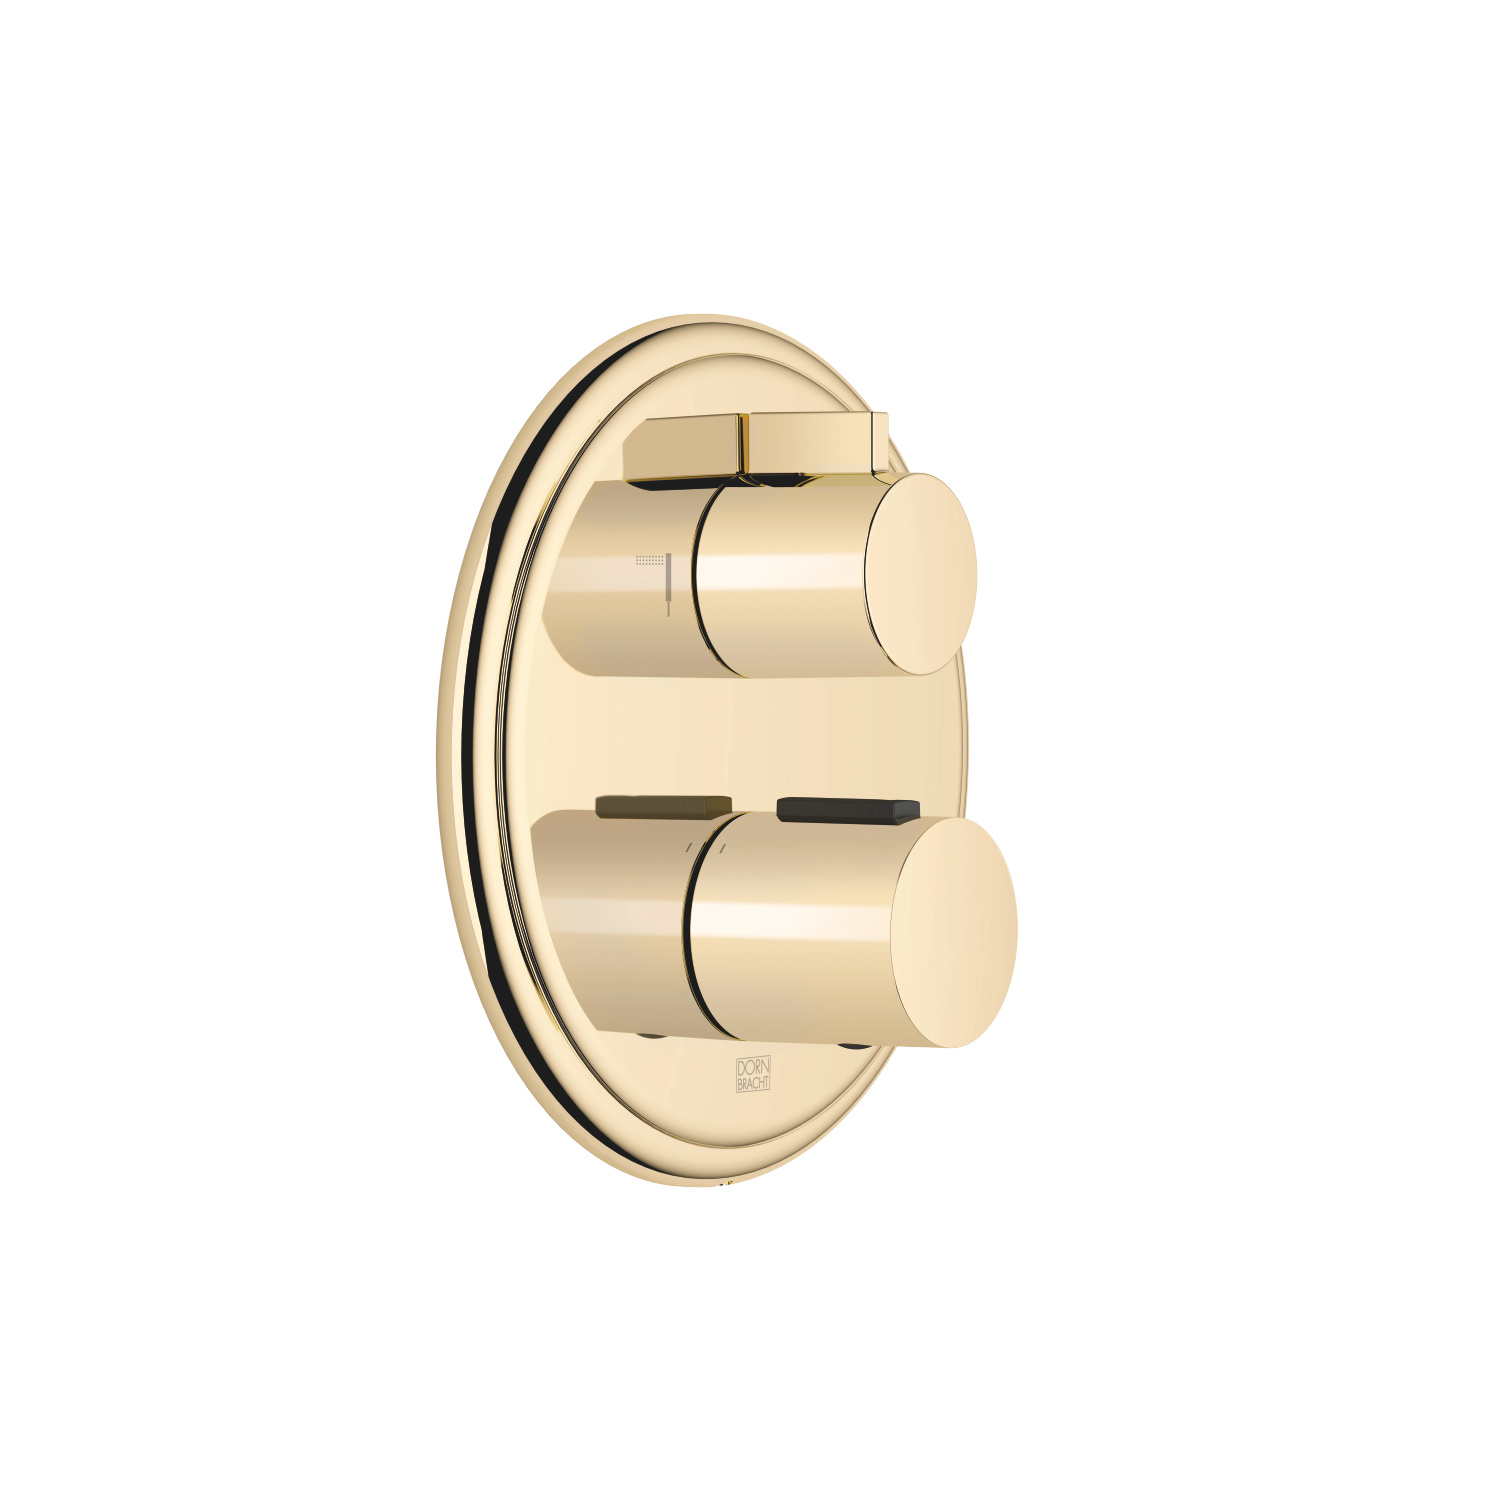 Concealed thermostat with two function volume control - Durabrass - 36 426 977-09 0010